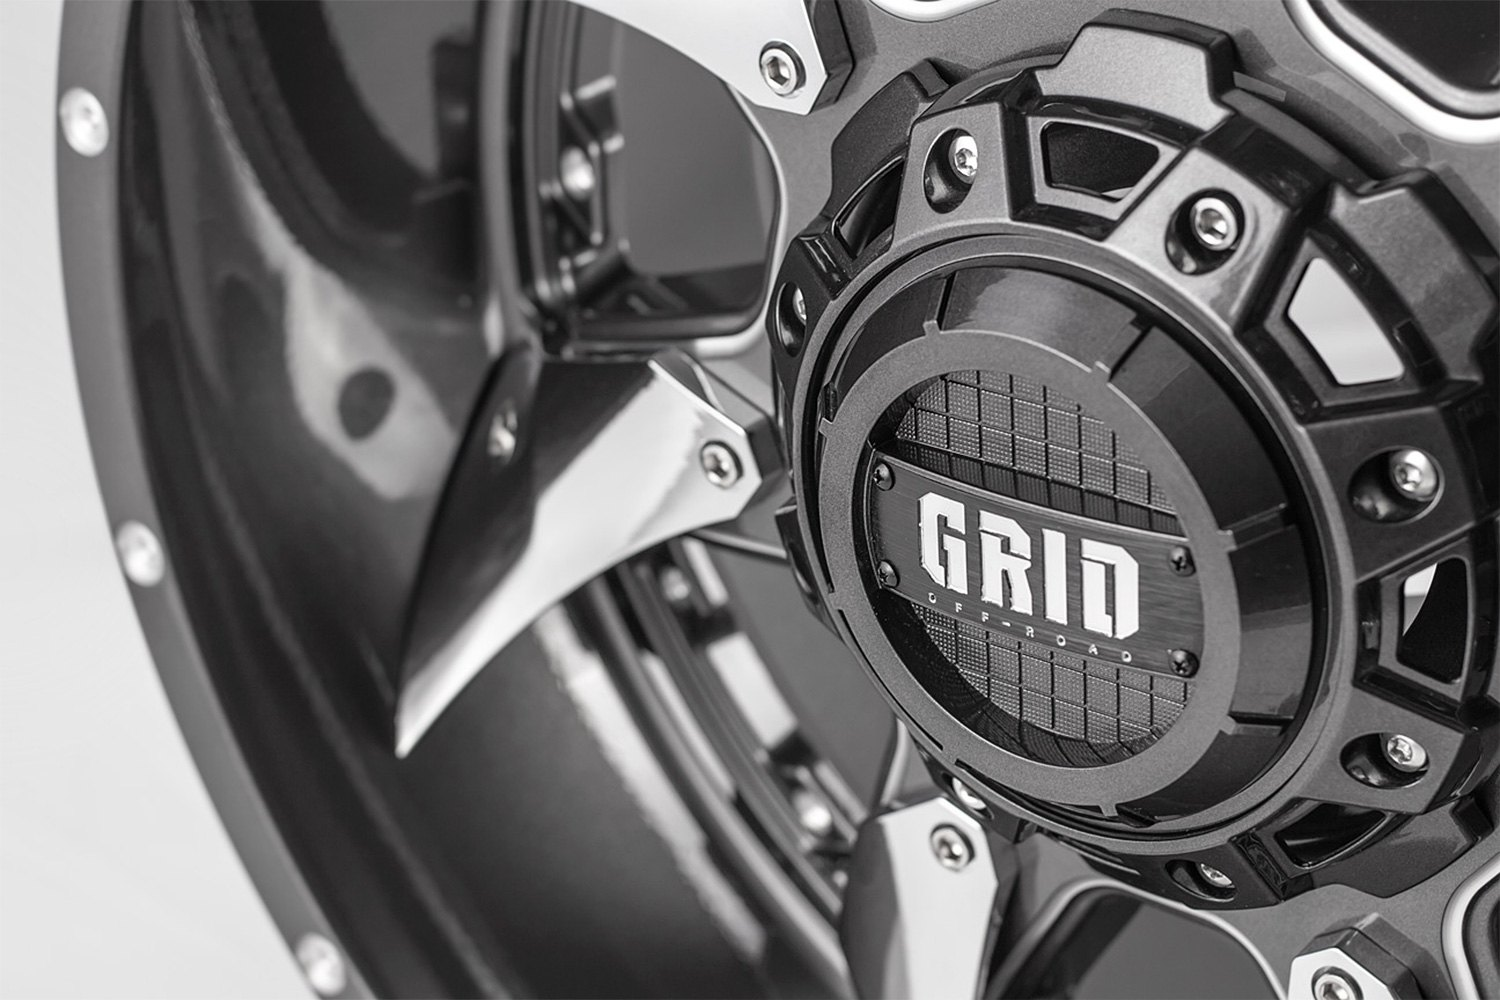 Grid Gd1 Wheels >> GRID OFF-ROAD® GD1 Wheels - Gloss Graphite with Milled Accents and Chrome Inserts Rims